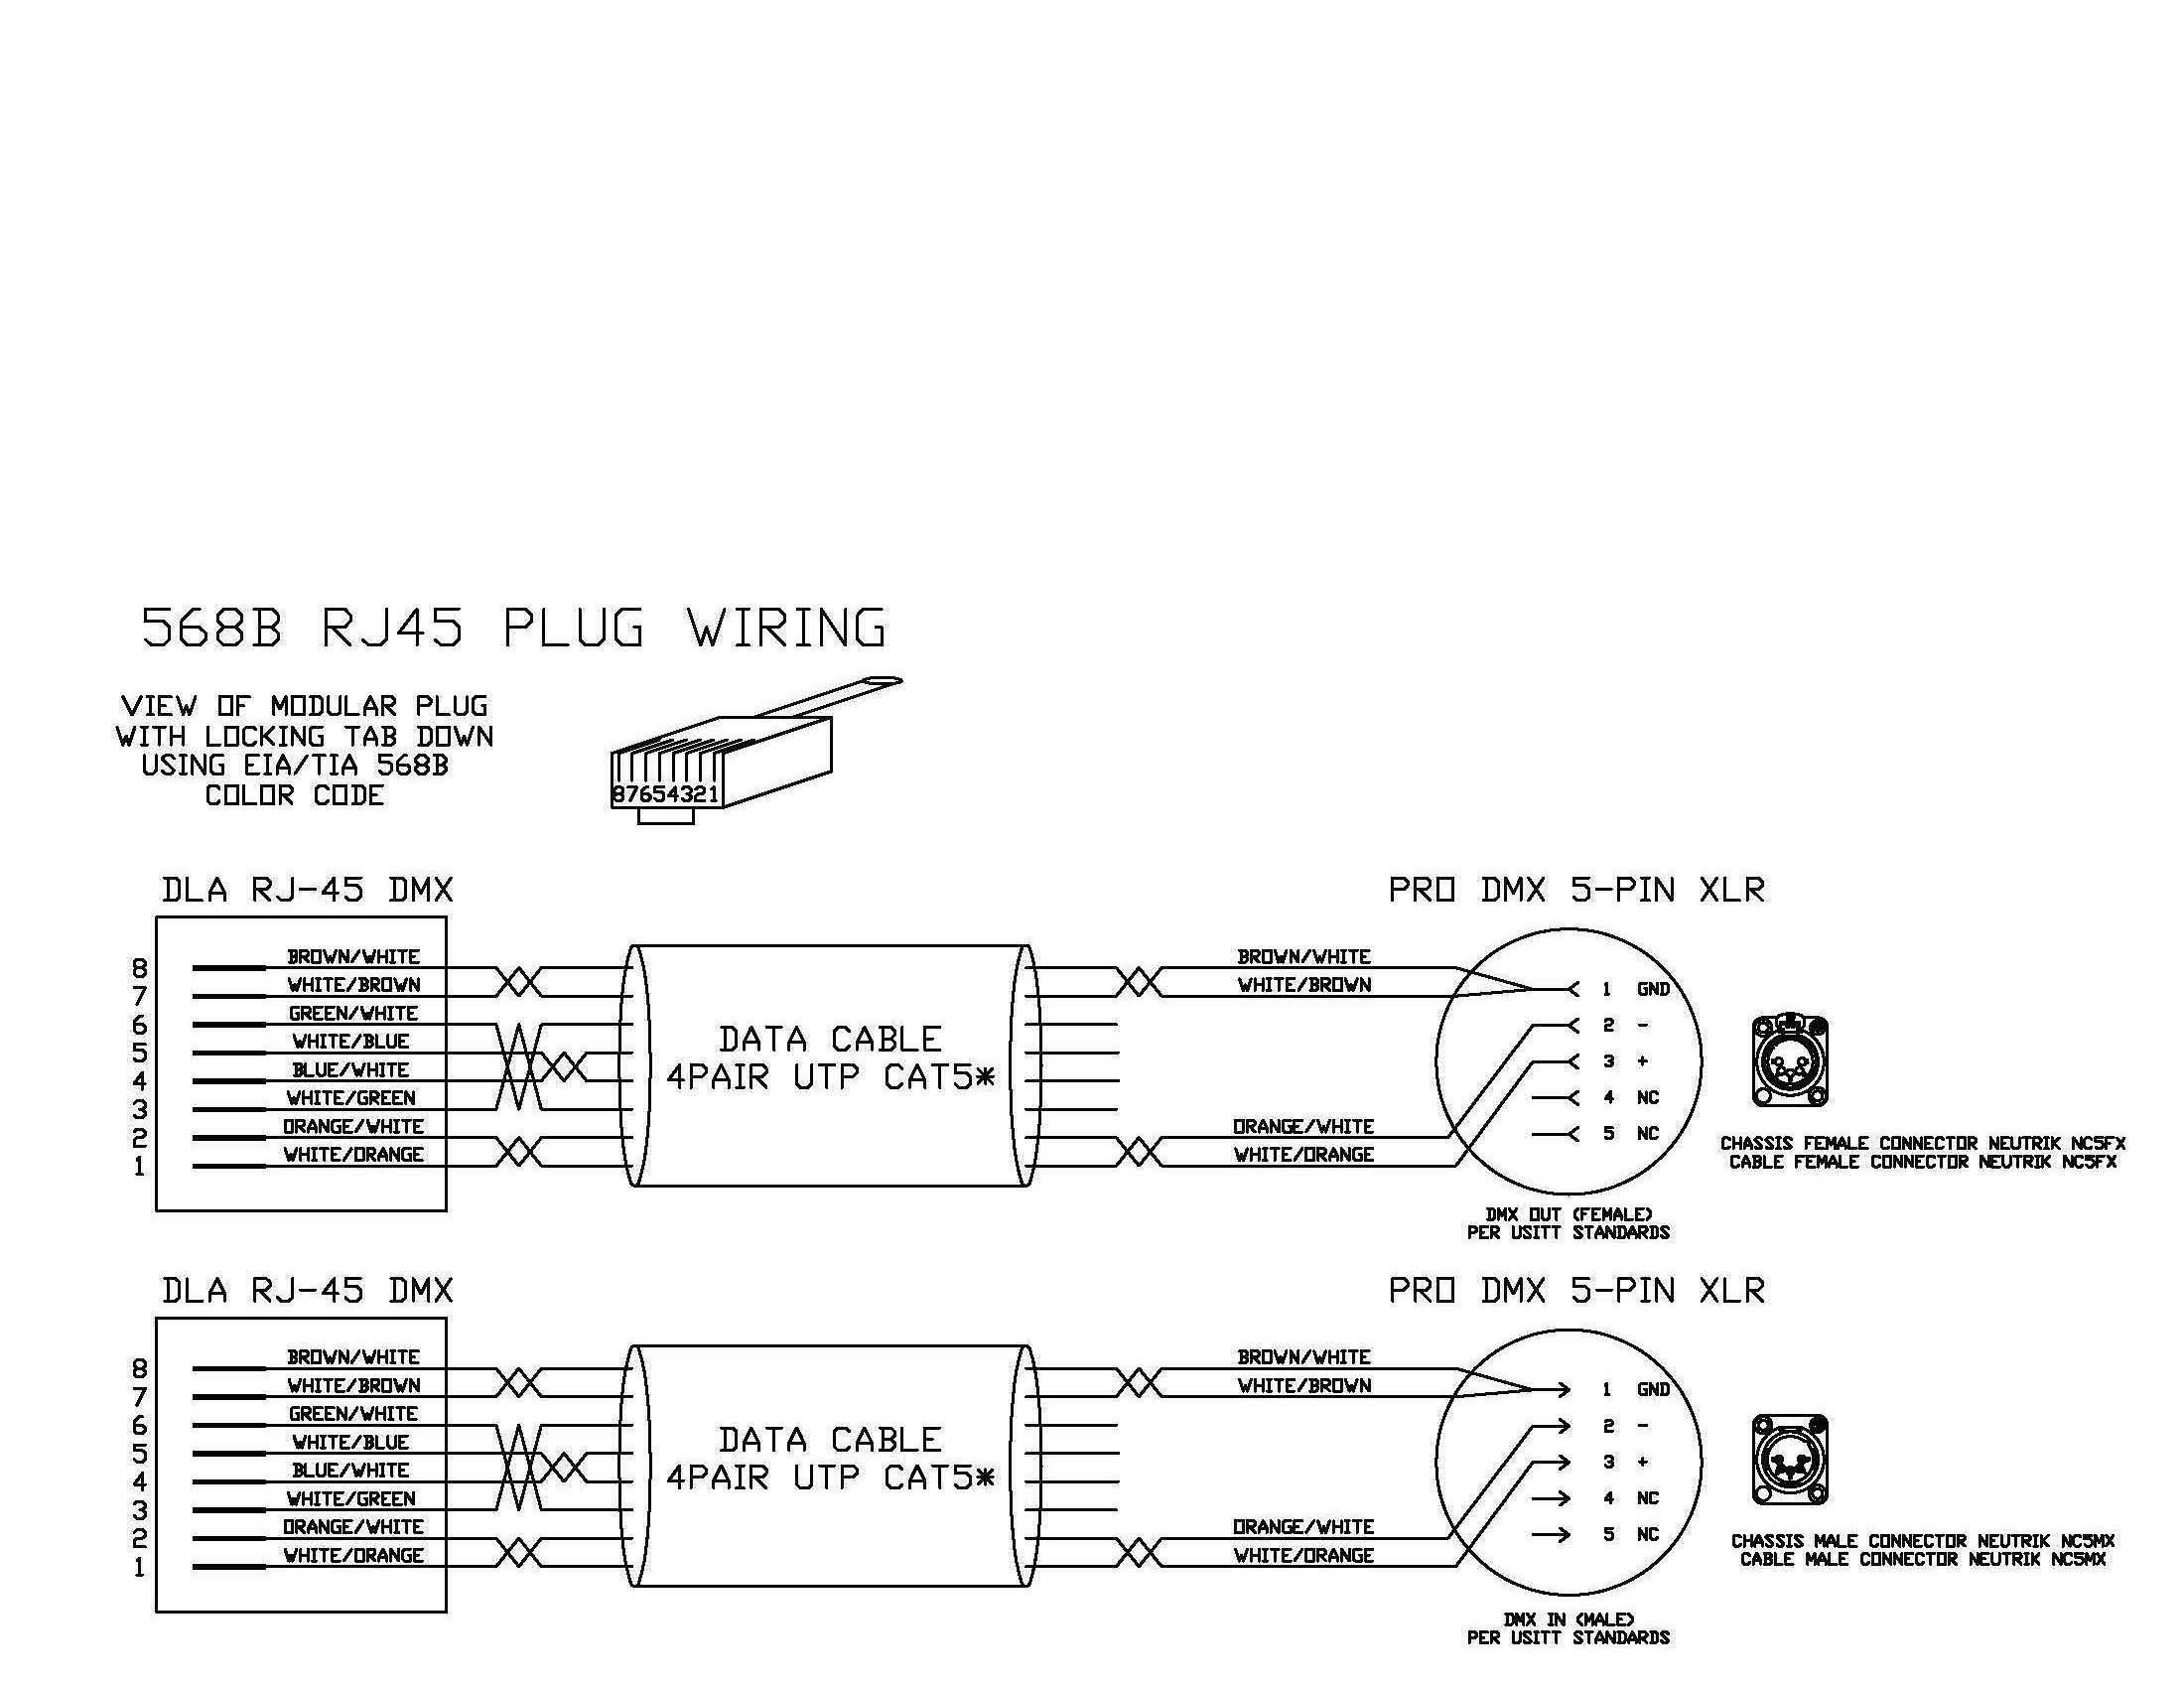 e975ddb6a839e630c21b81db05ca4fa6 xlr to rj45 wiring diagram xlr electrical wiring diagrams xlr wiring color codes at creativeand.co